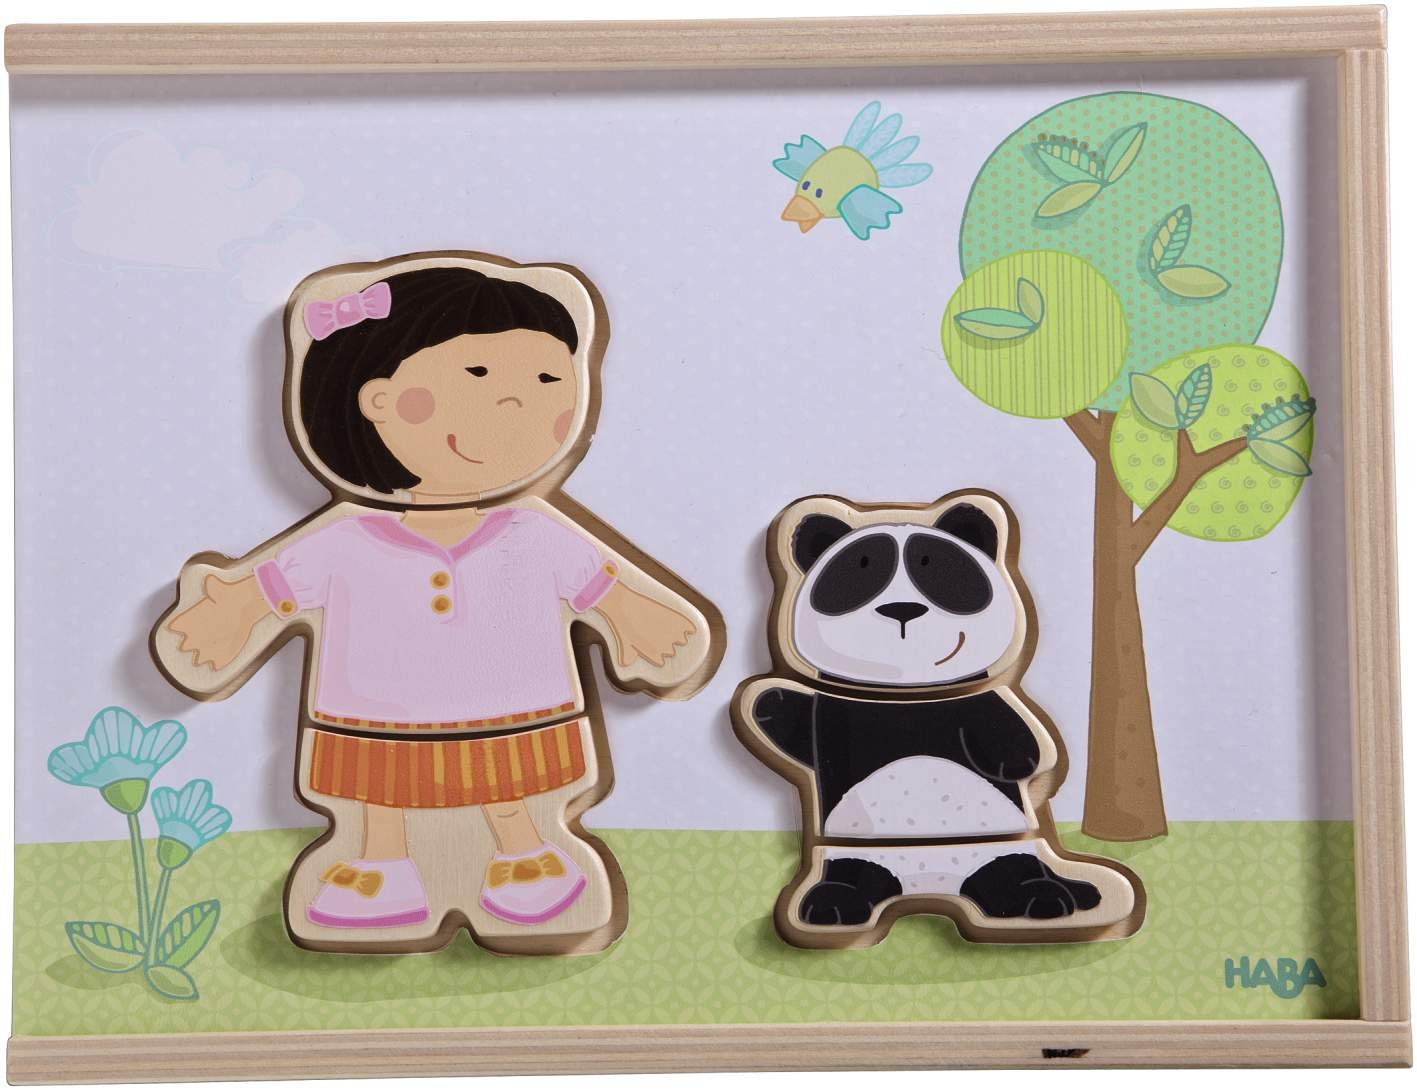 HABA Children of the World - 36 Piece Mix and Match Multi-Cultural Puzzle with Wooden Storage Box by HABA (Image #2)